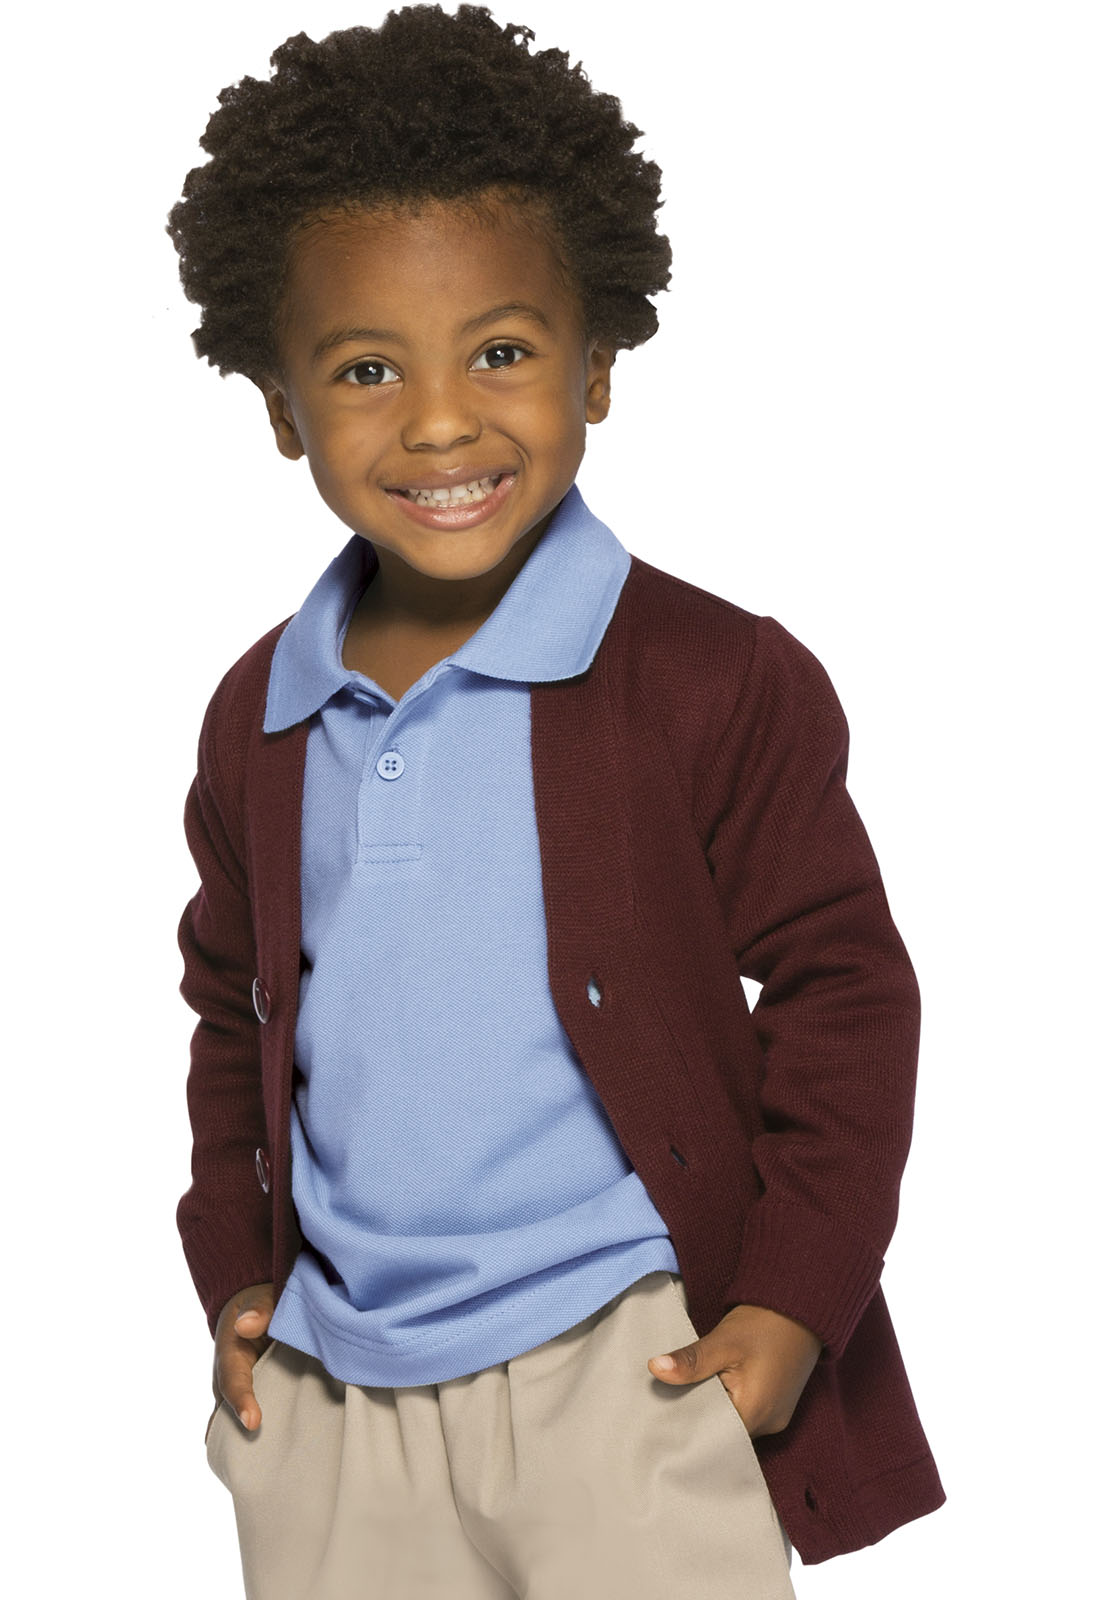 dec12950 Classroom Youth Unisex Cardigan Sweater in Burgundy 56432-BUR from Image  Experts